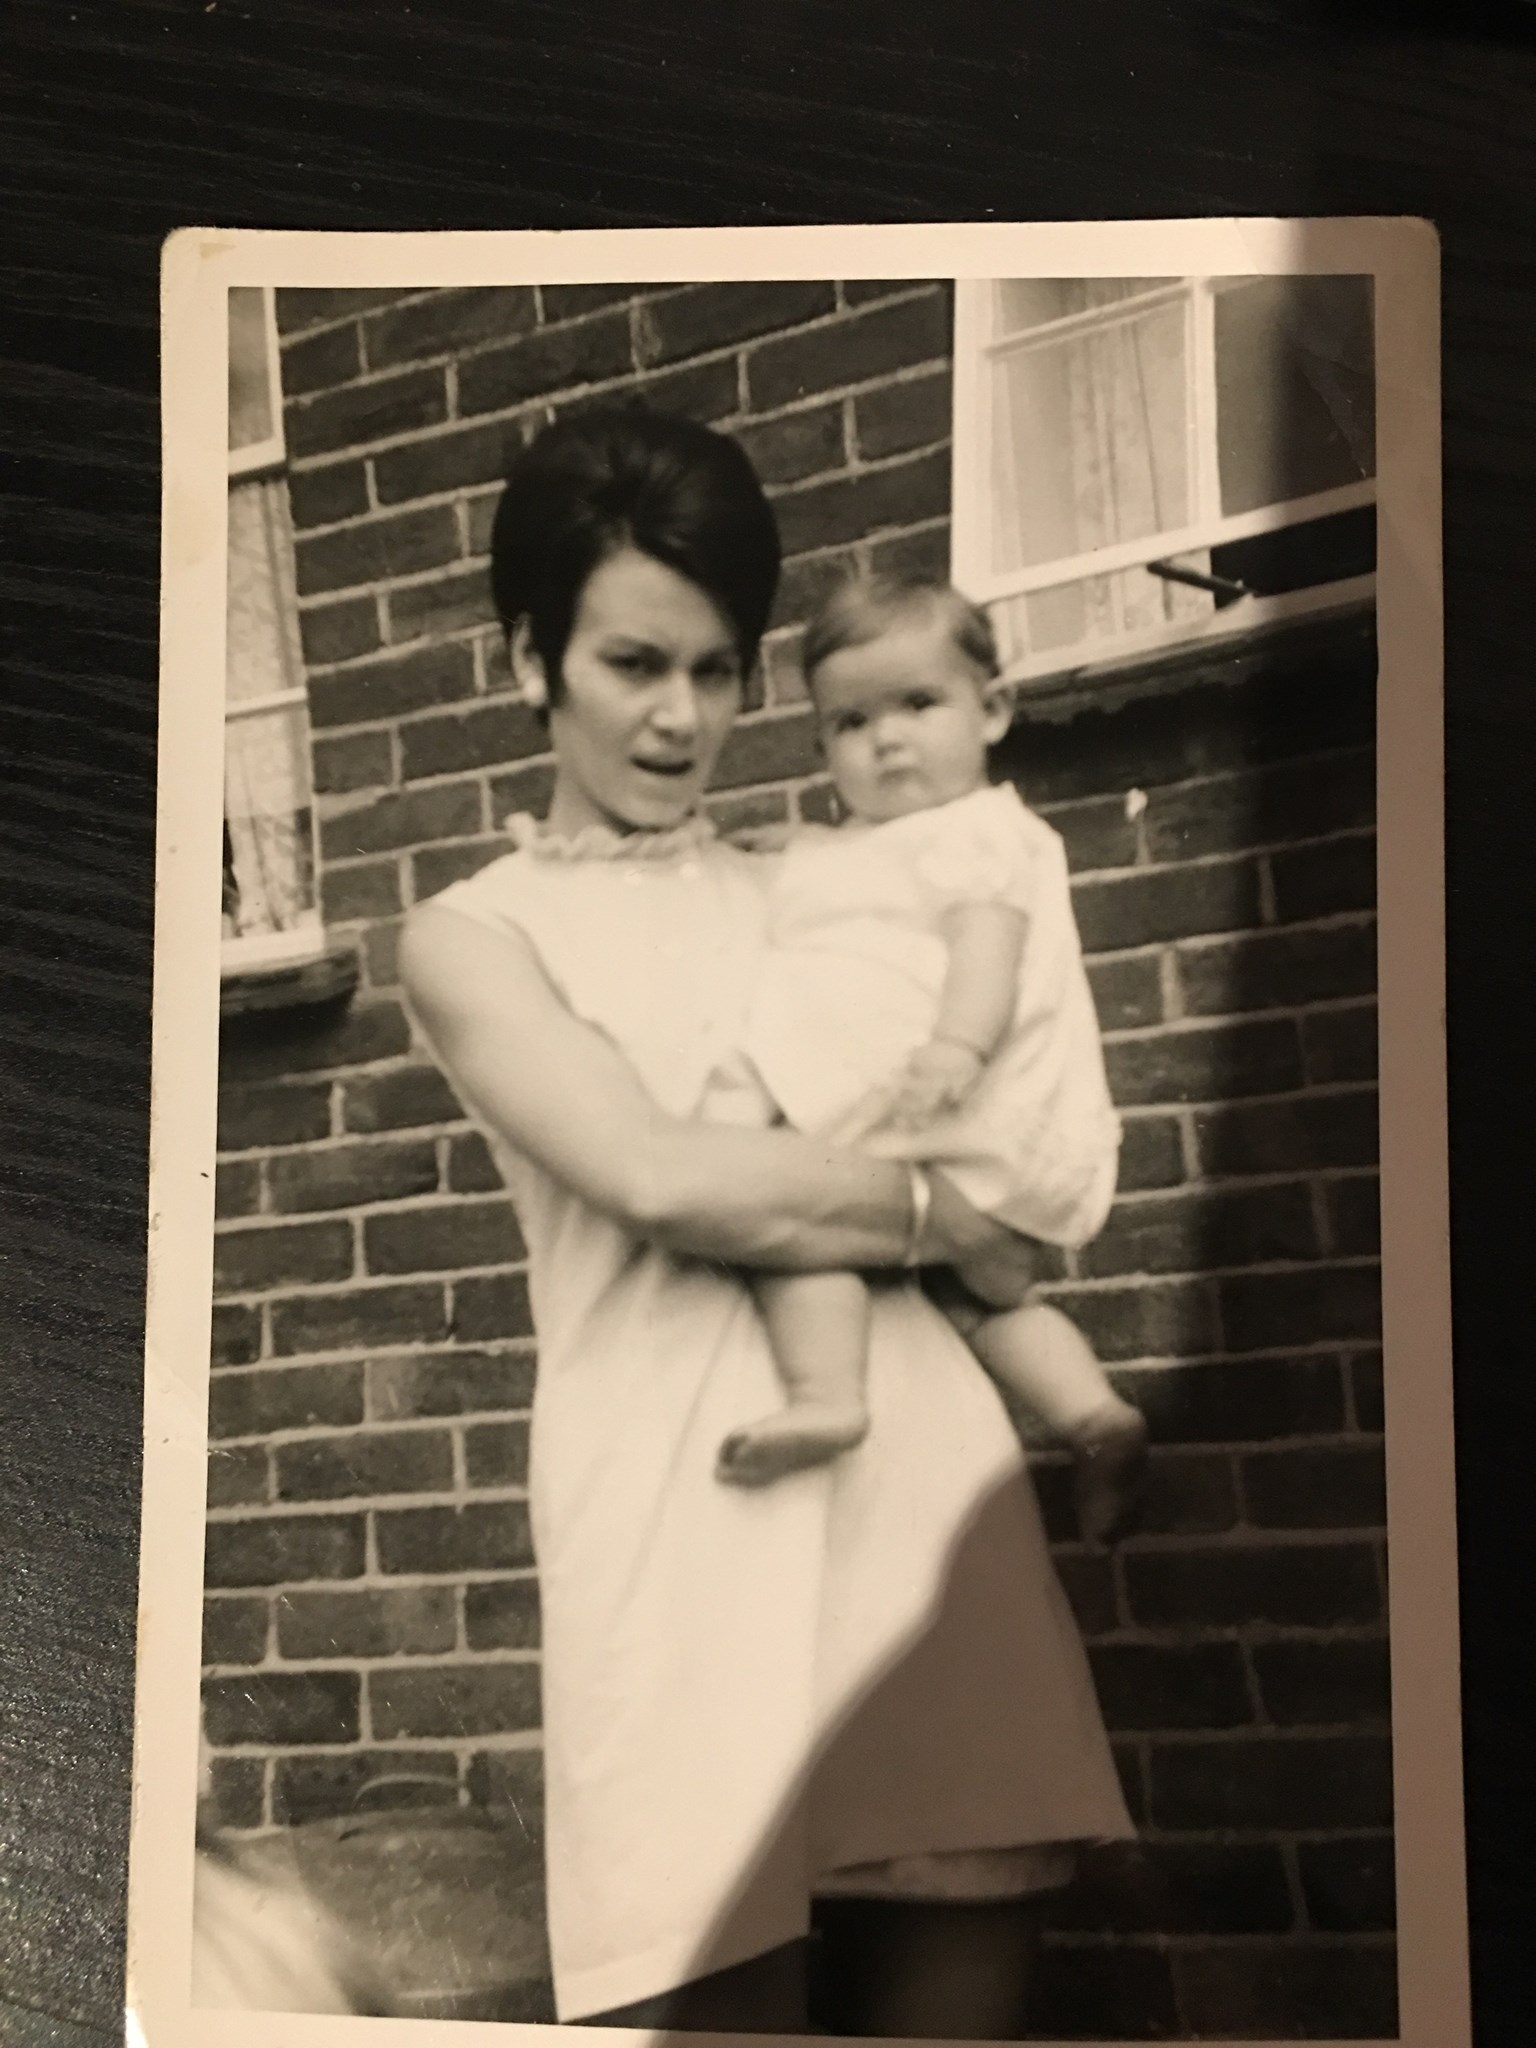 mum in her younger days with me